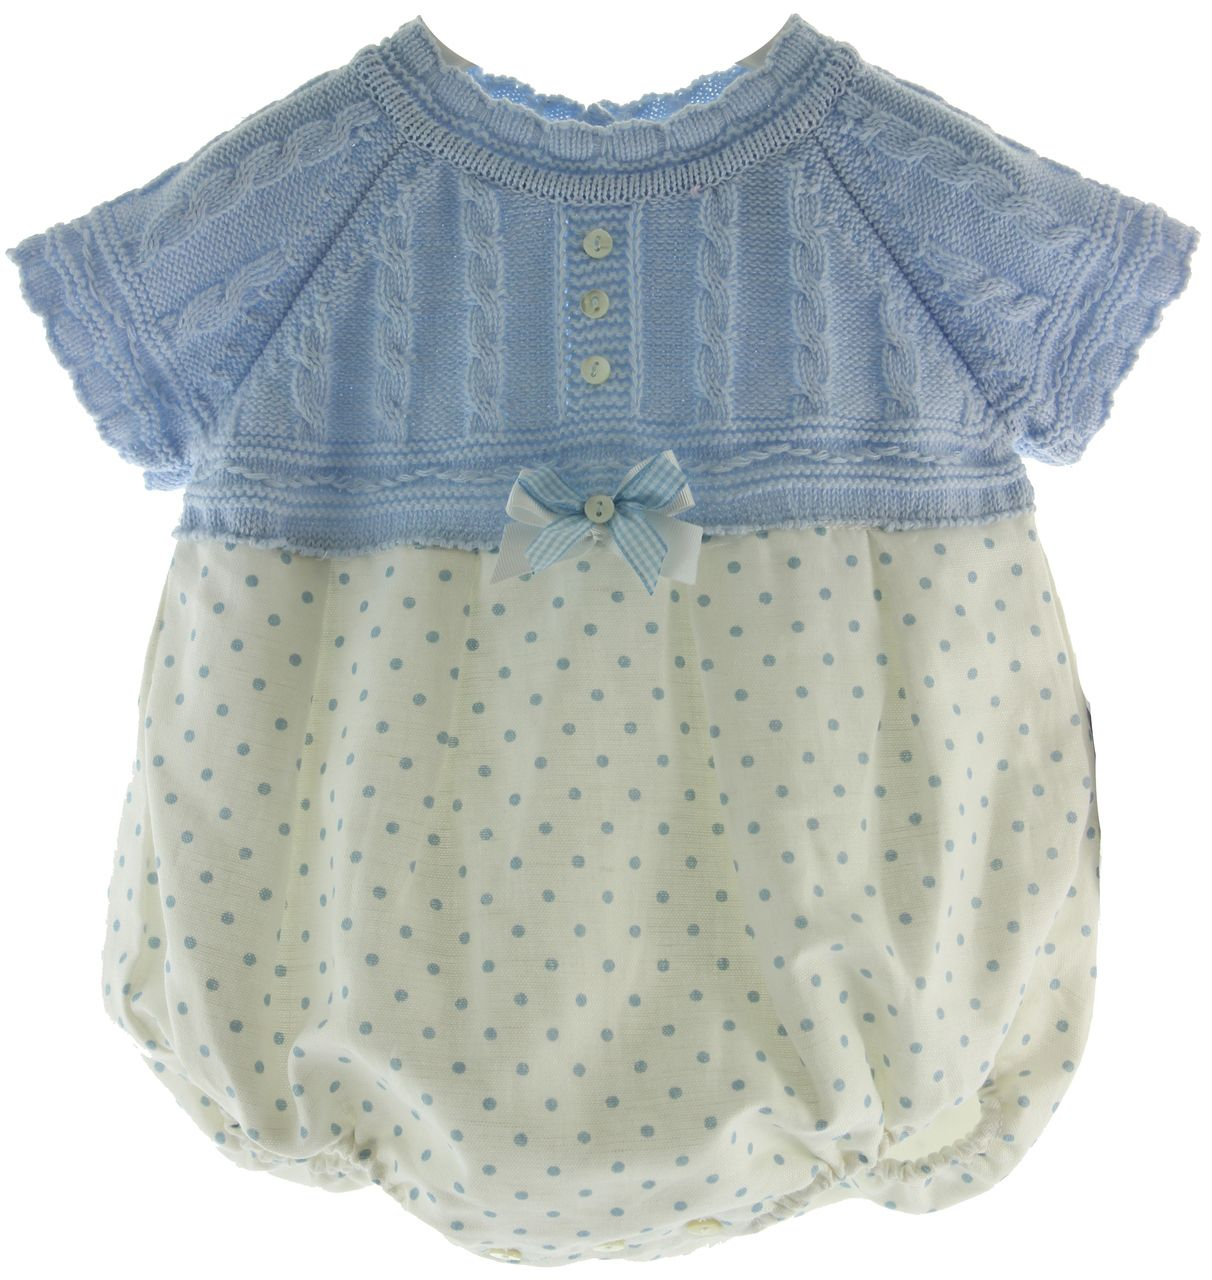 Hiccups Childrens Boutique - Baby Girls Blue White Polkadot Bubble Outfit Sarah Louise, $65.00 (https://www.hiccupschildrensboutique.com/baby-girls-blue-white-polkadot-bubble-outfit-sarah-louise/)